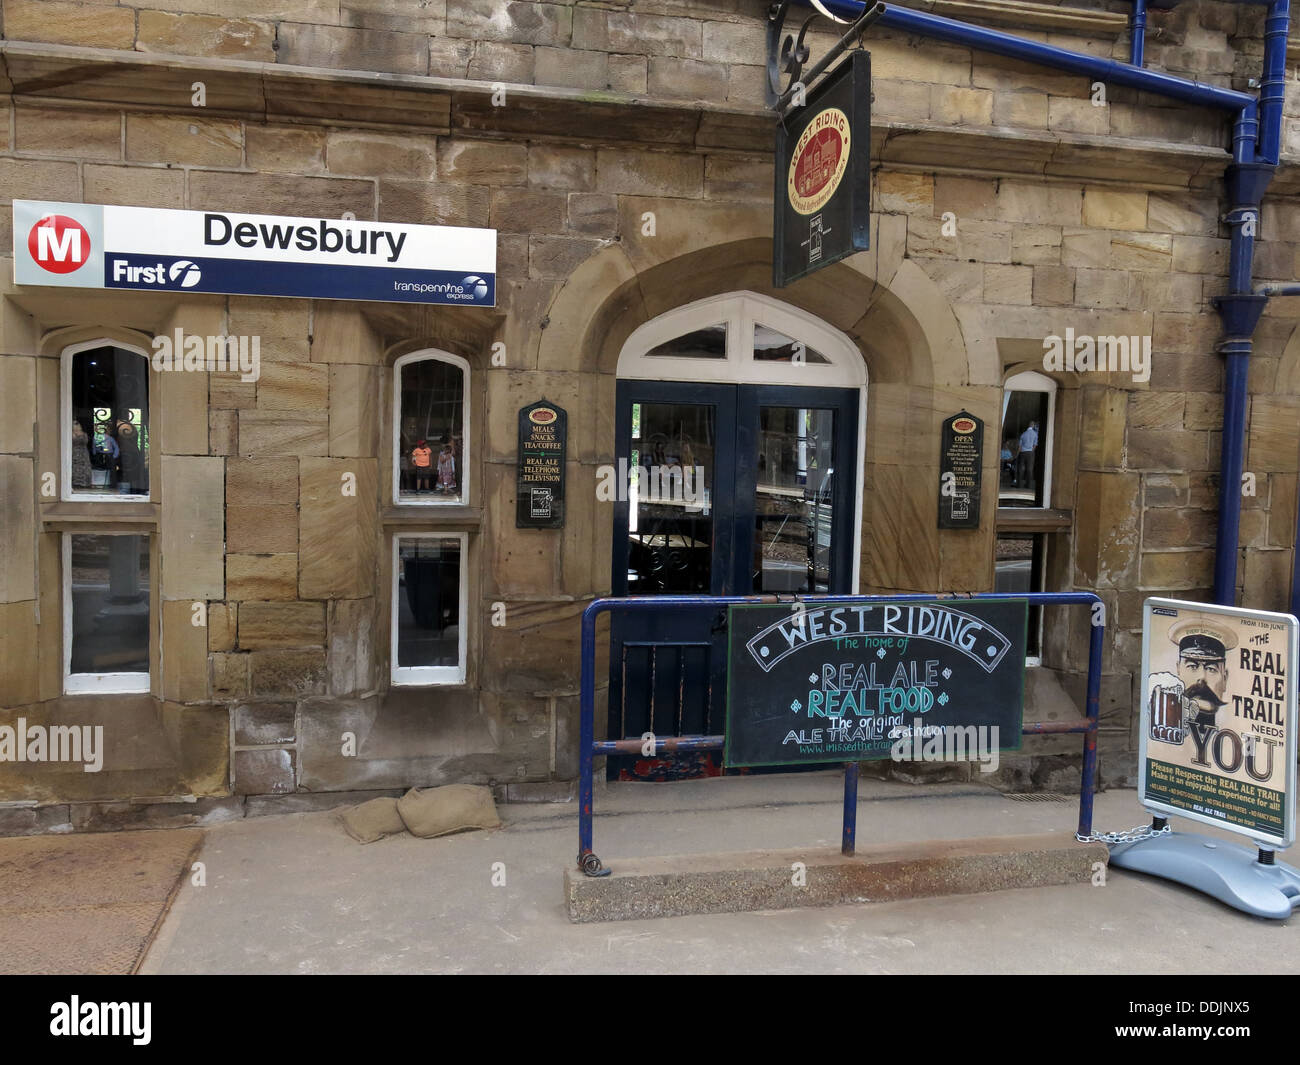 Dewsbury Railway Station - Stock Image